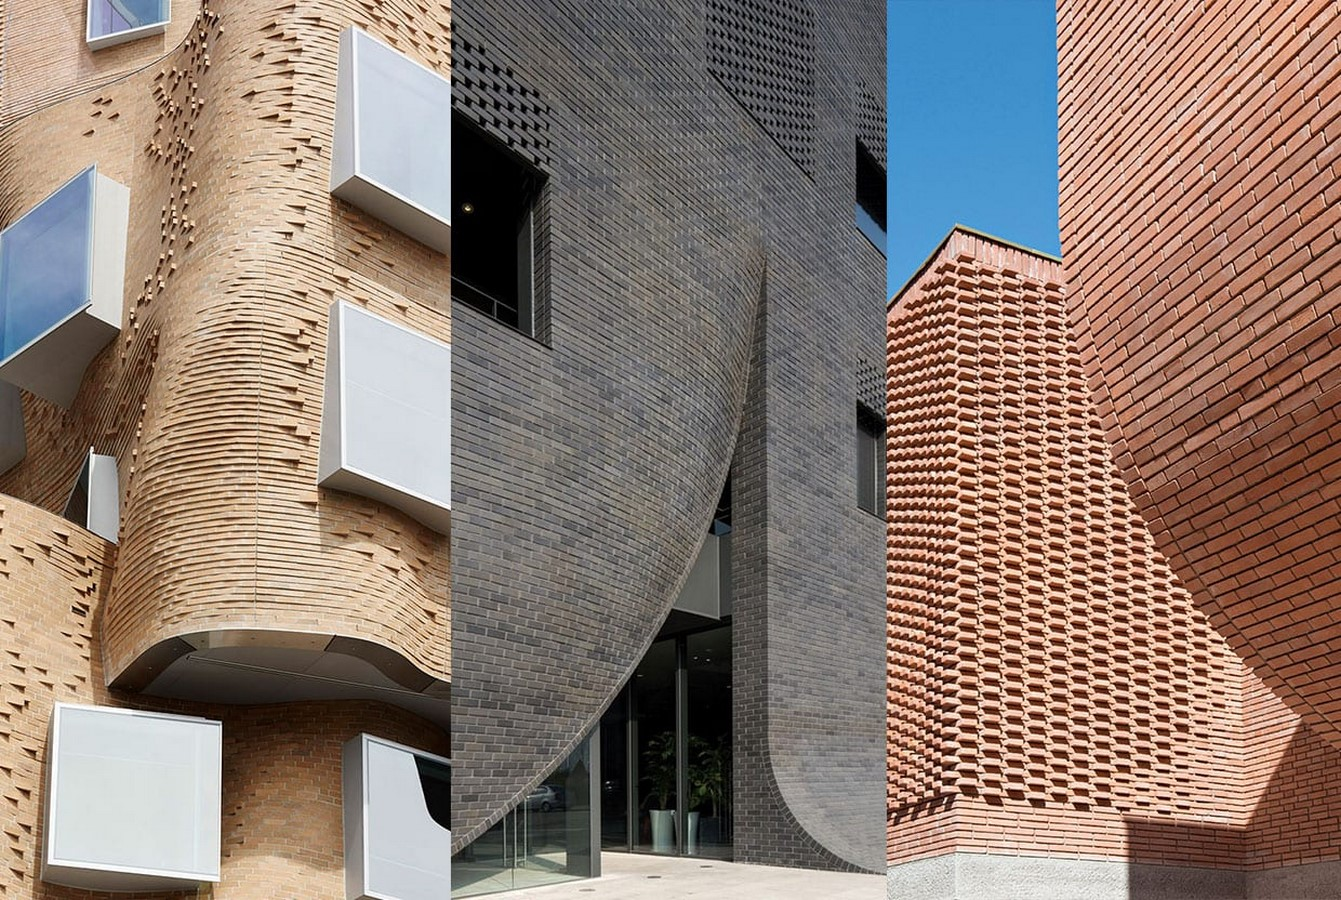 Unusual methods of using bricks in architecture -Sheet1